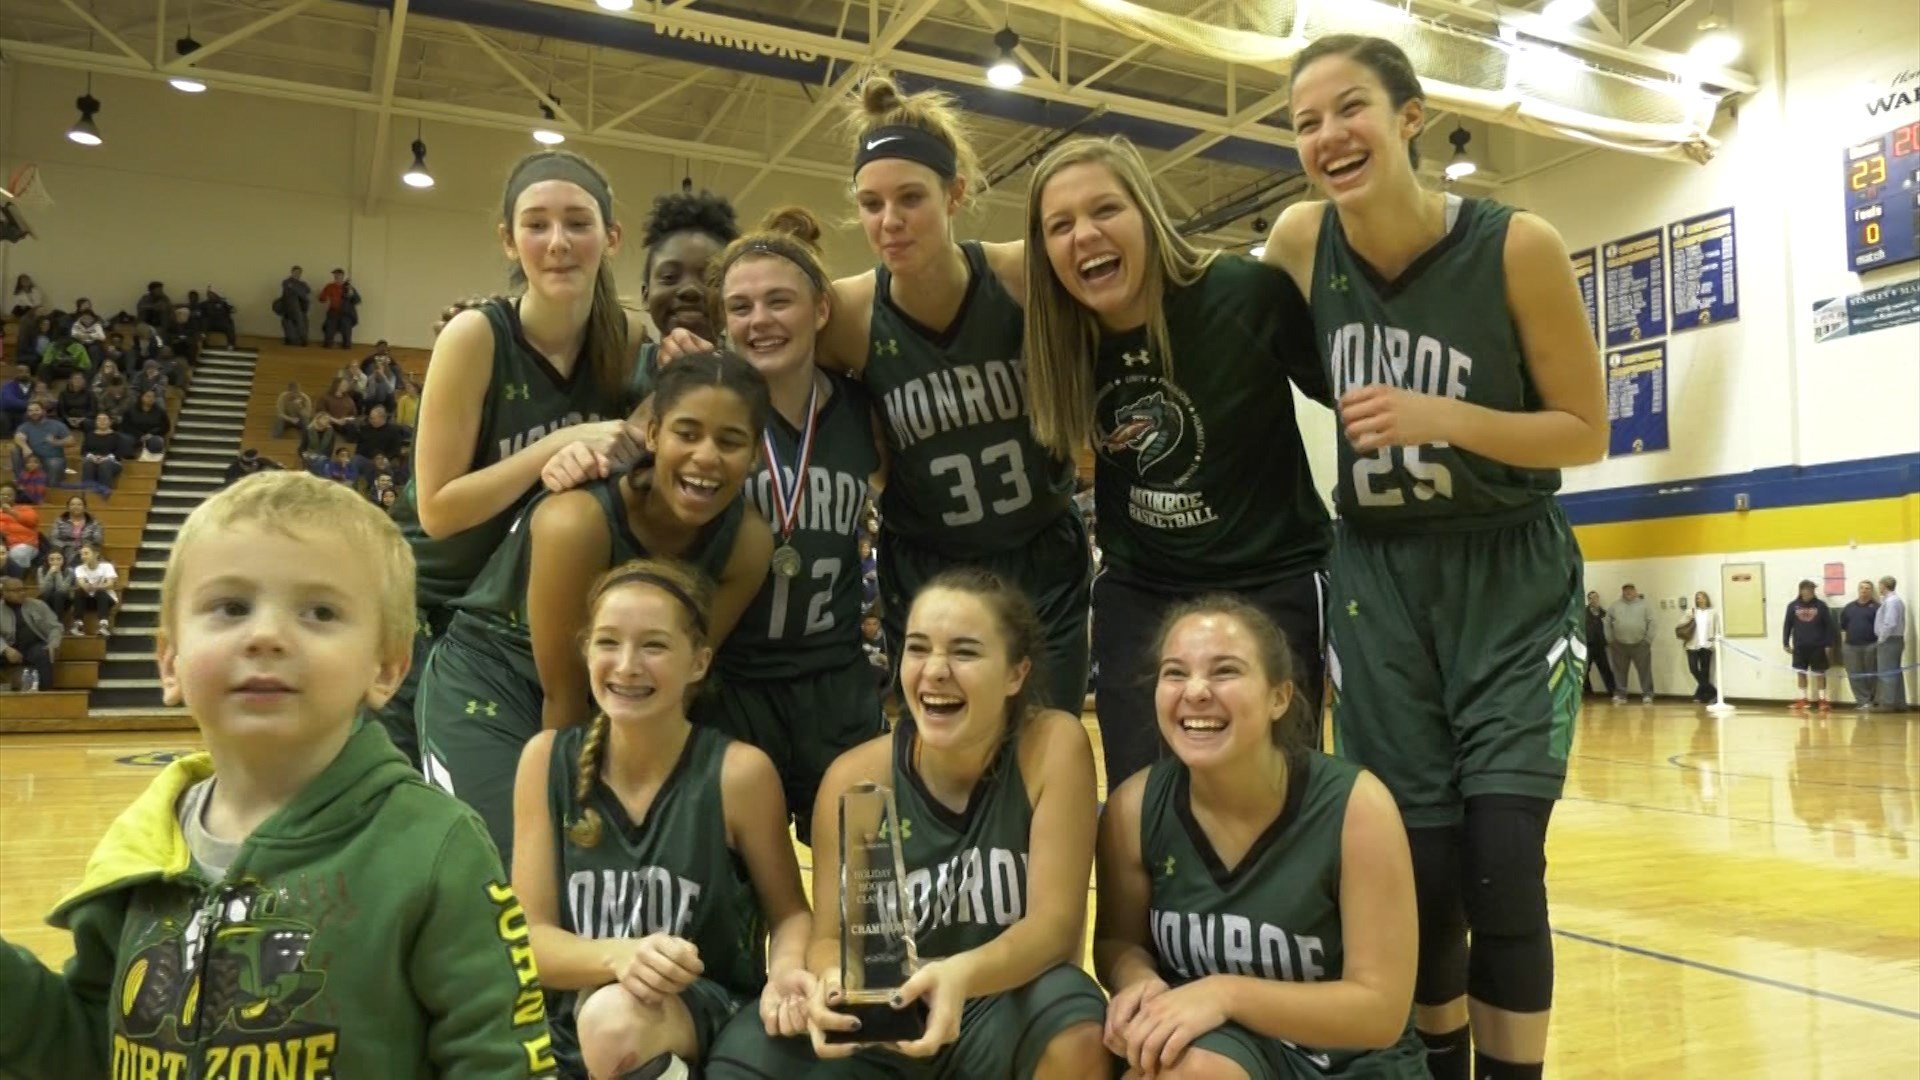 William Monroe wins the Holiday Classic Championship